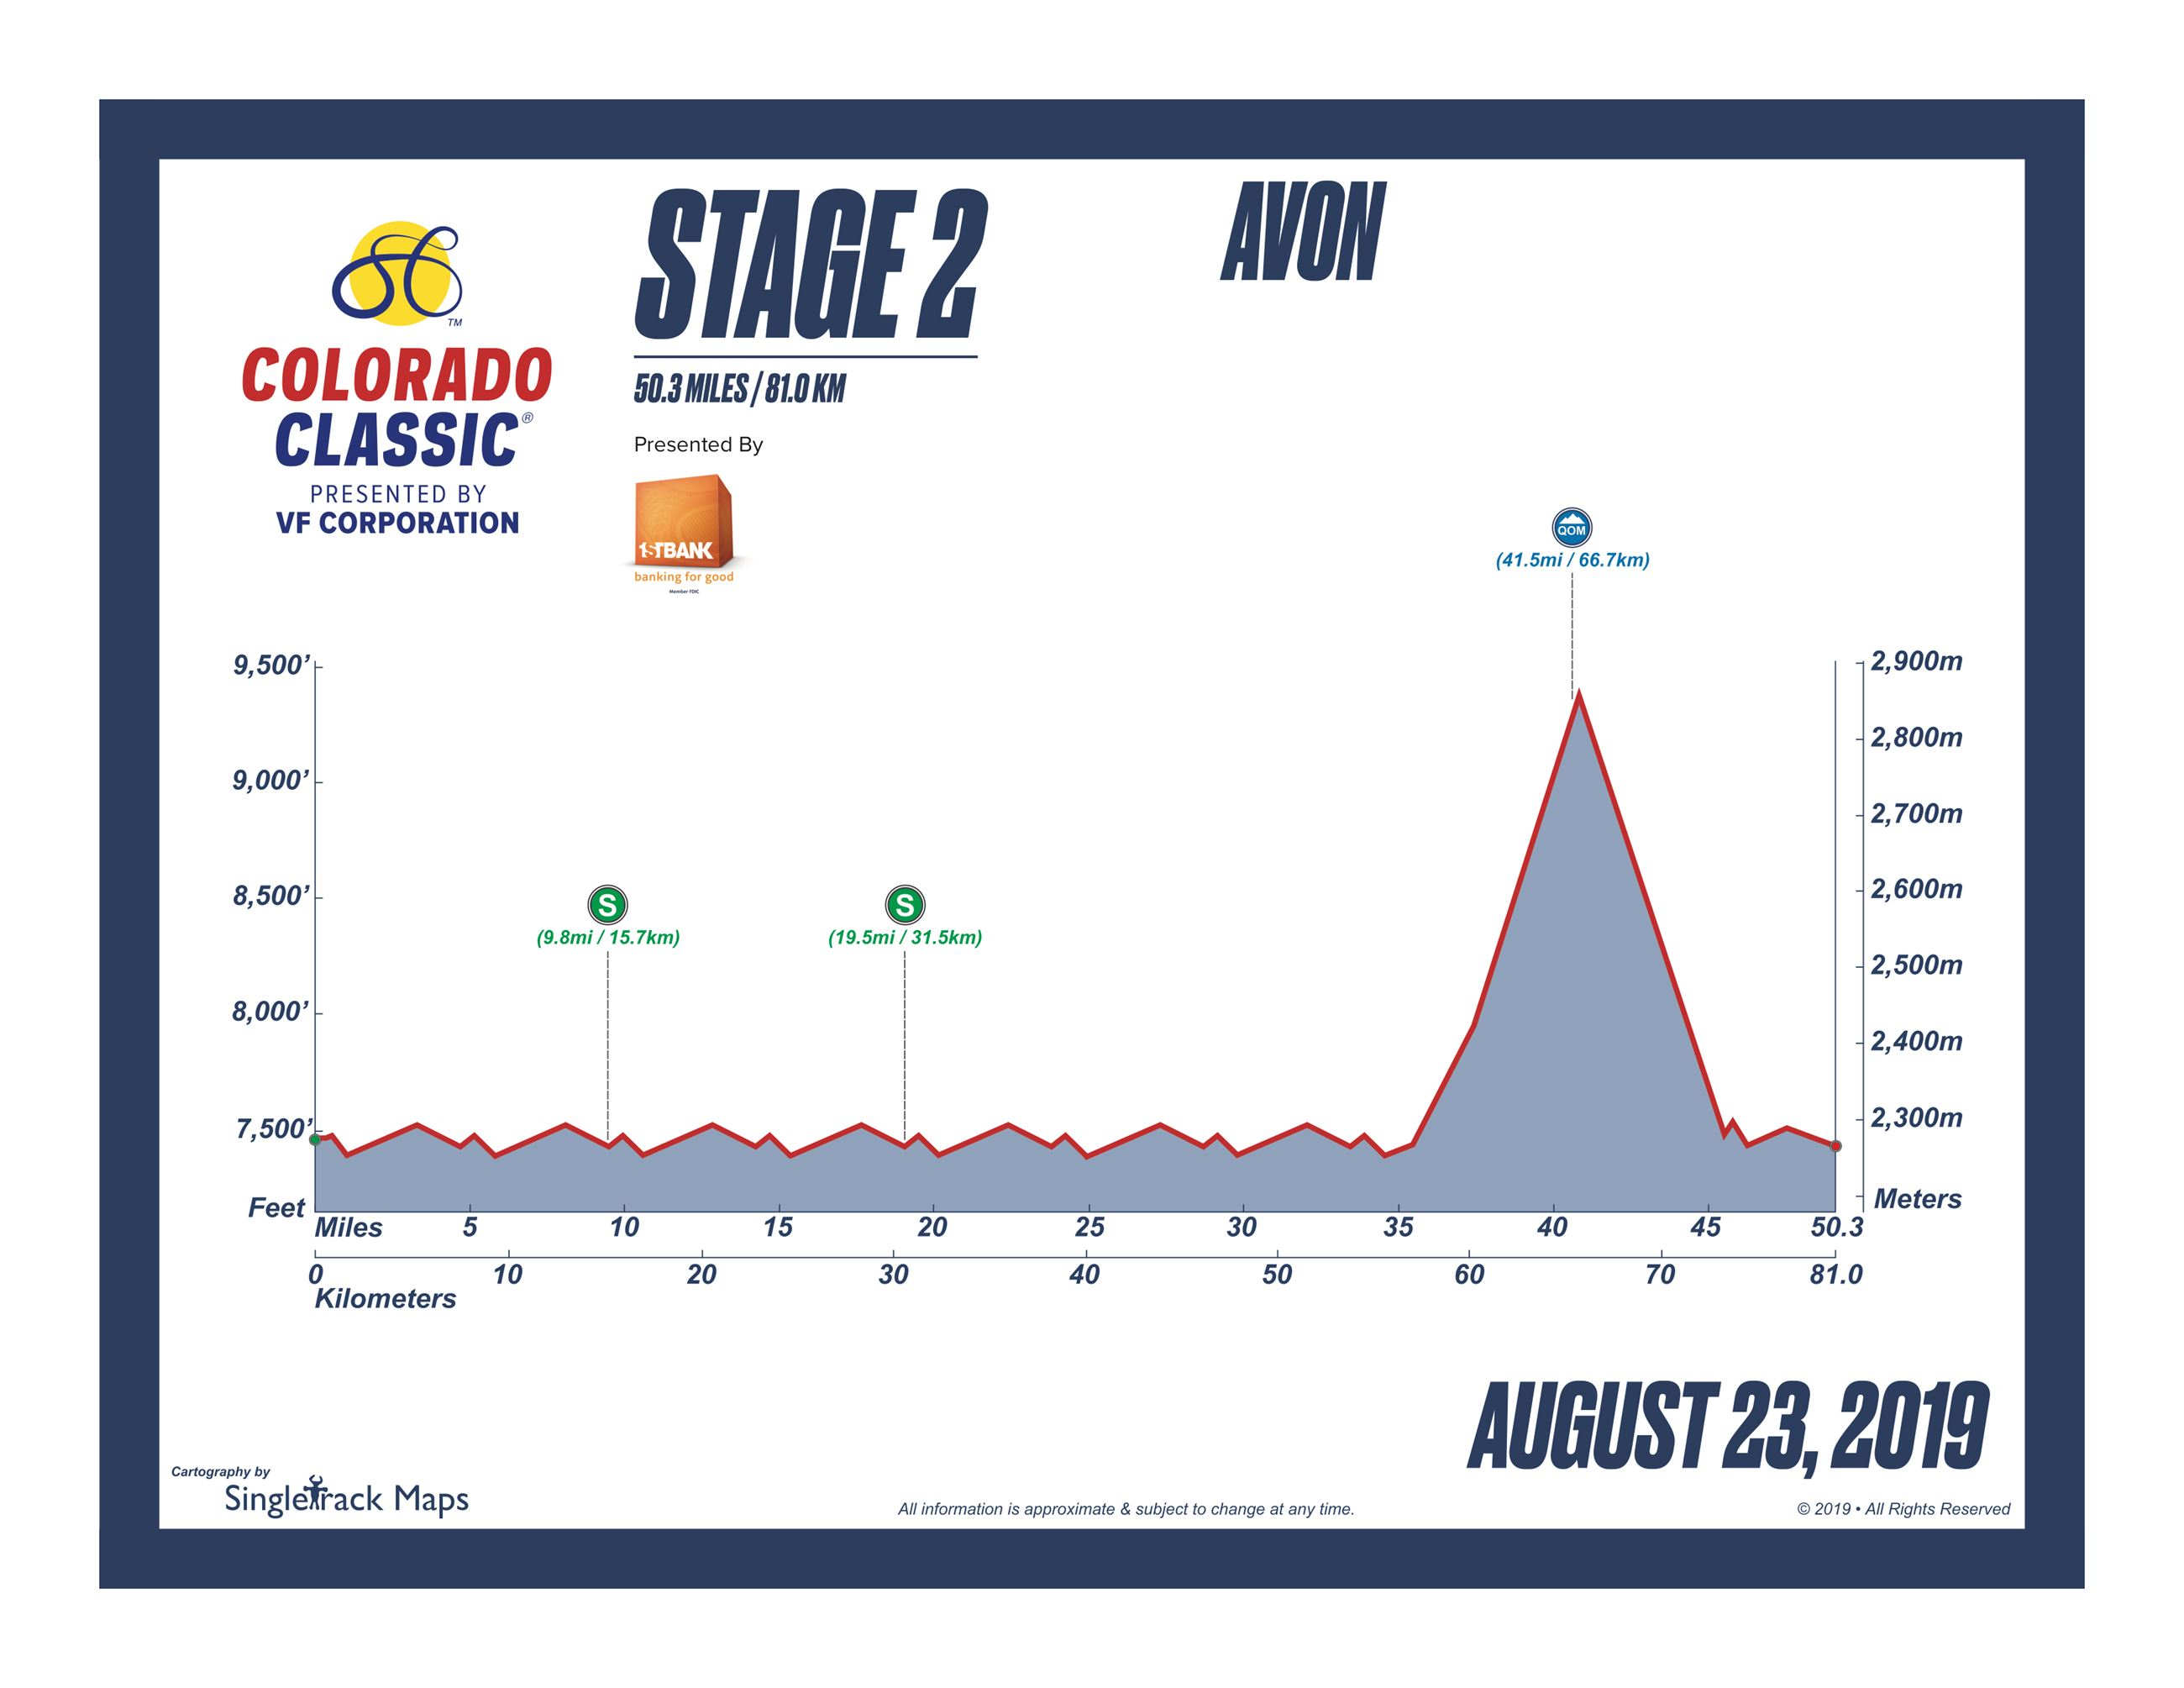 CO Classic 2019 Stage 2 Profile